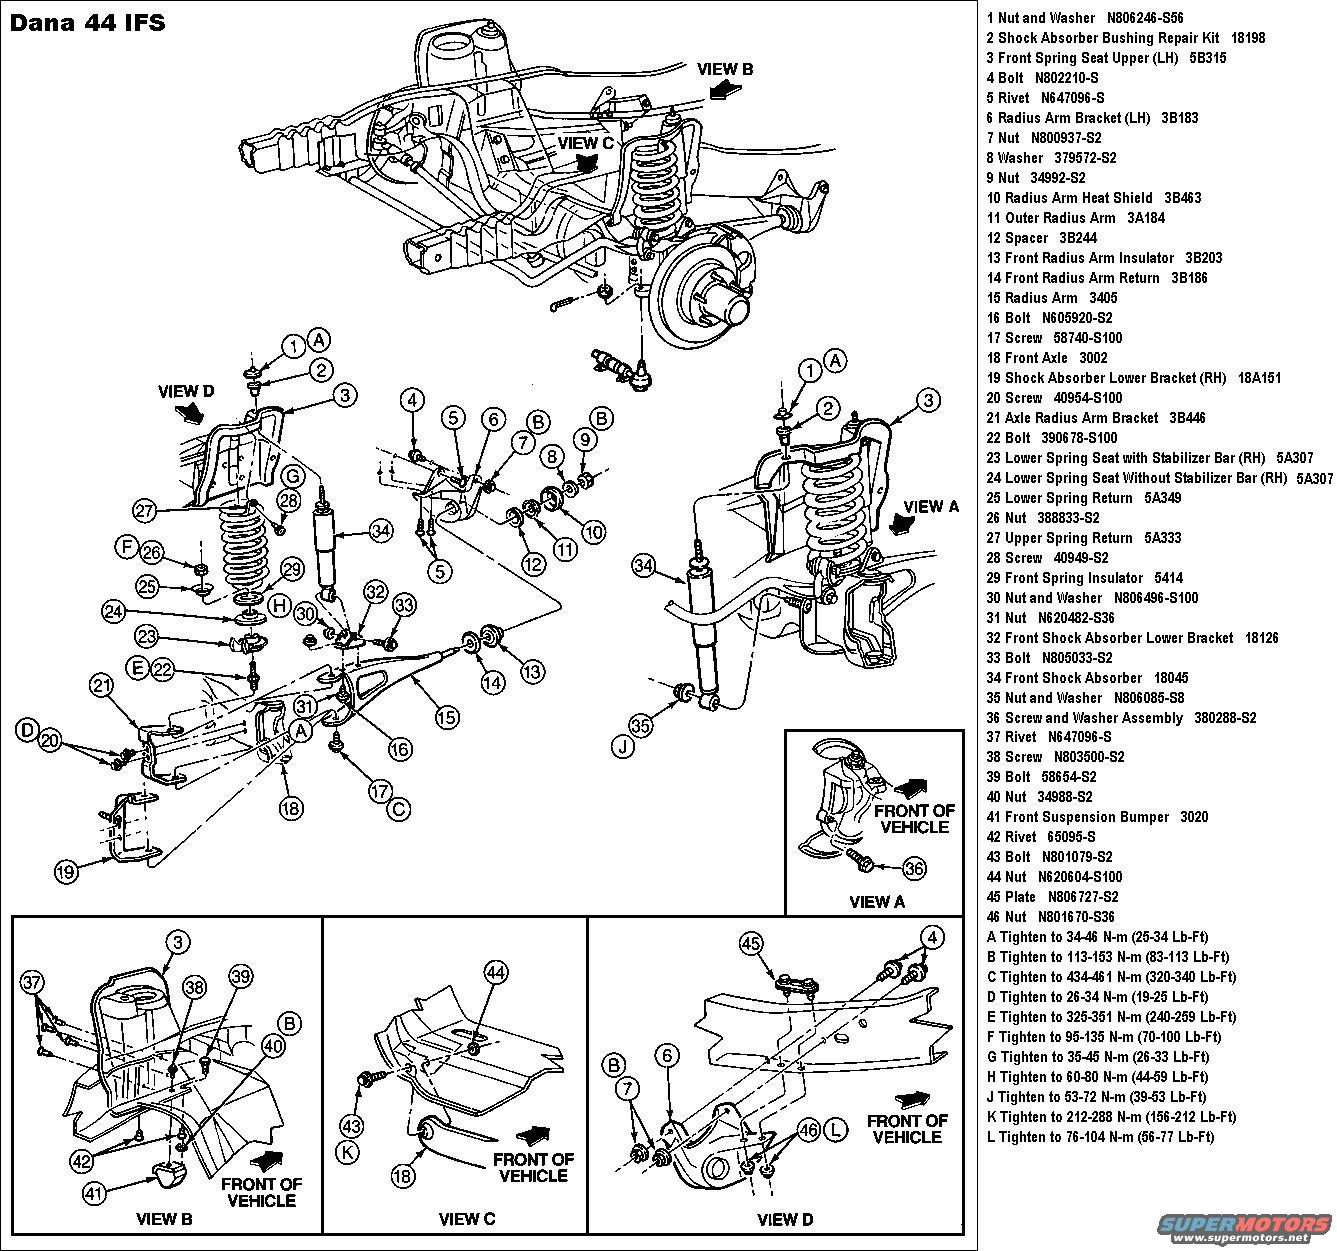 642518 96 Powerstroke Wont Start likewise 99 F150 Fuse Box Wiring Diagram besides 534085 1994 F150 Airbag Control Module furthermore 85guj 2006 Gmc C5500 Will Not Blow Air Motor further 1052313 Steering Column Wiring Colors. on f250 fuse panel wiring diagram